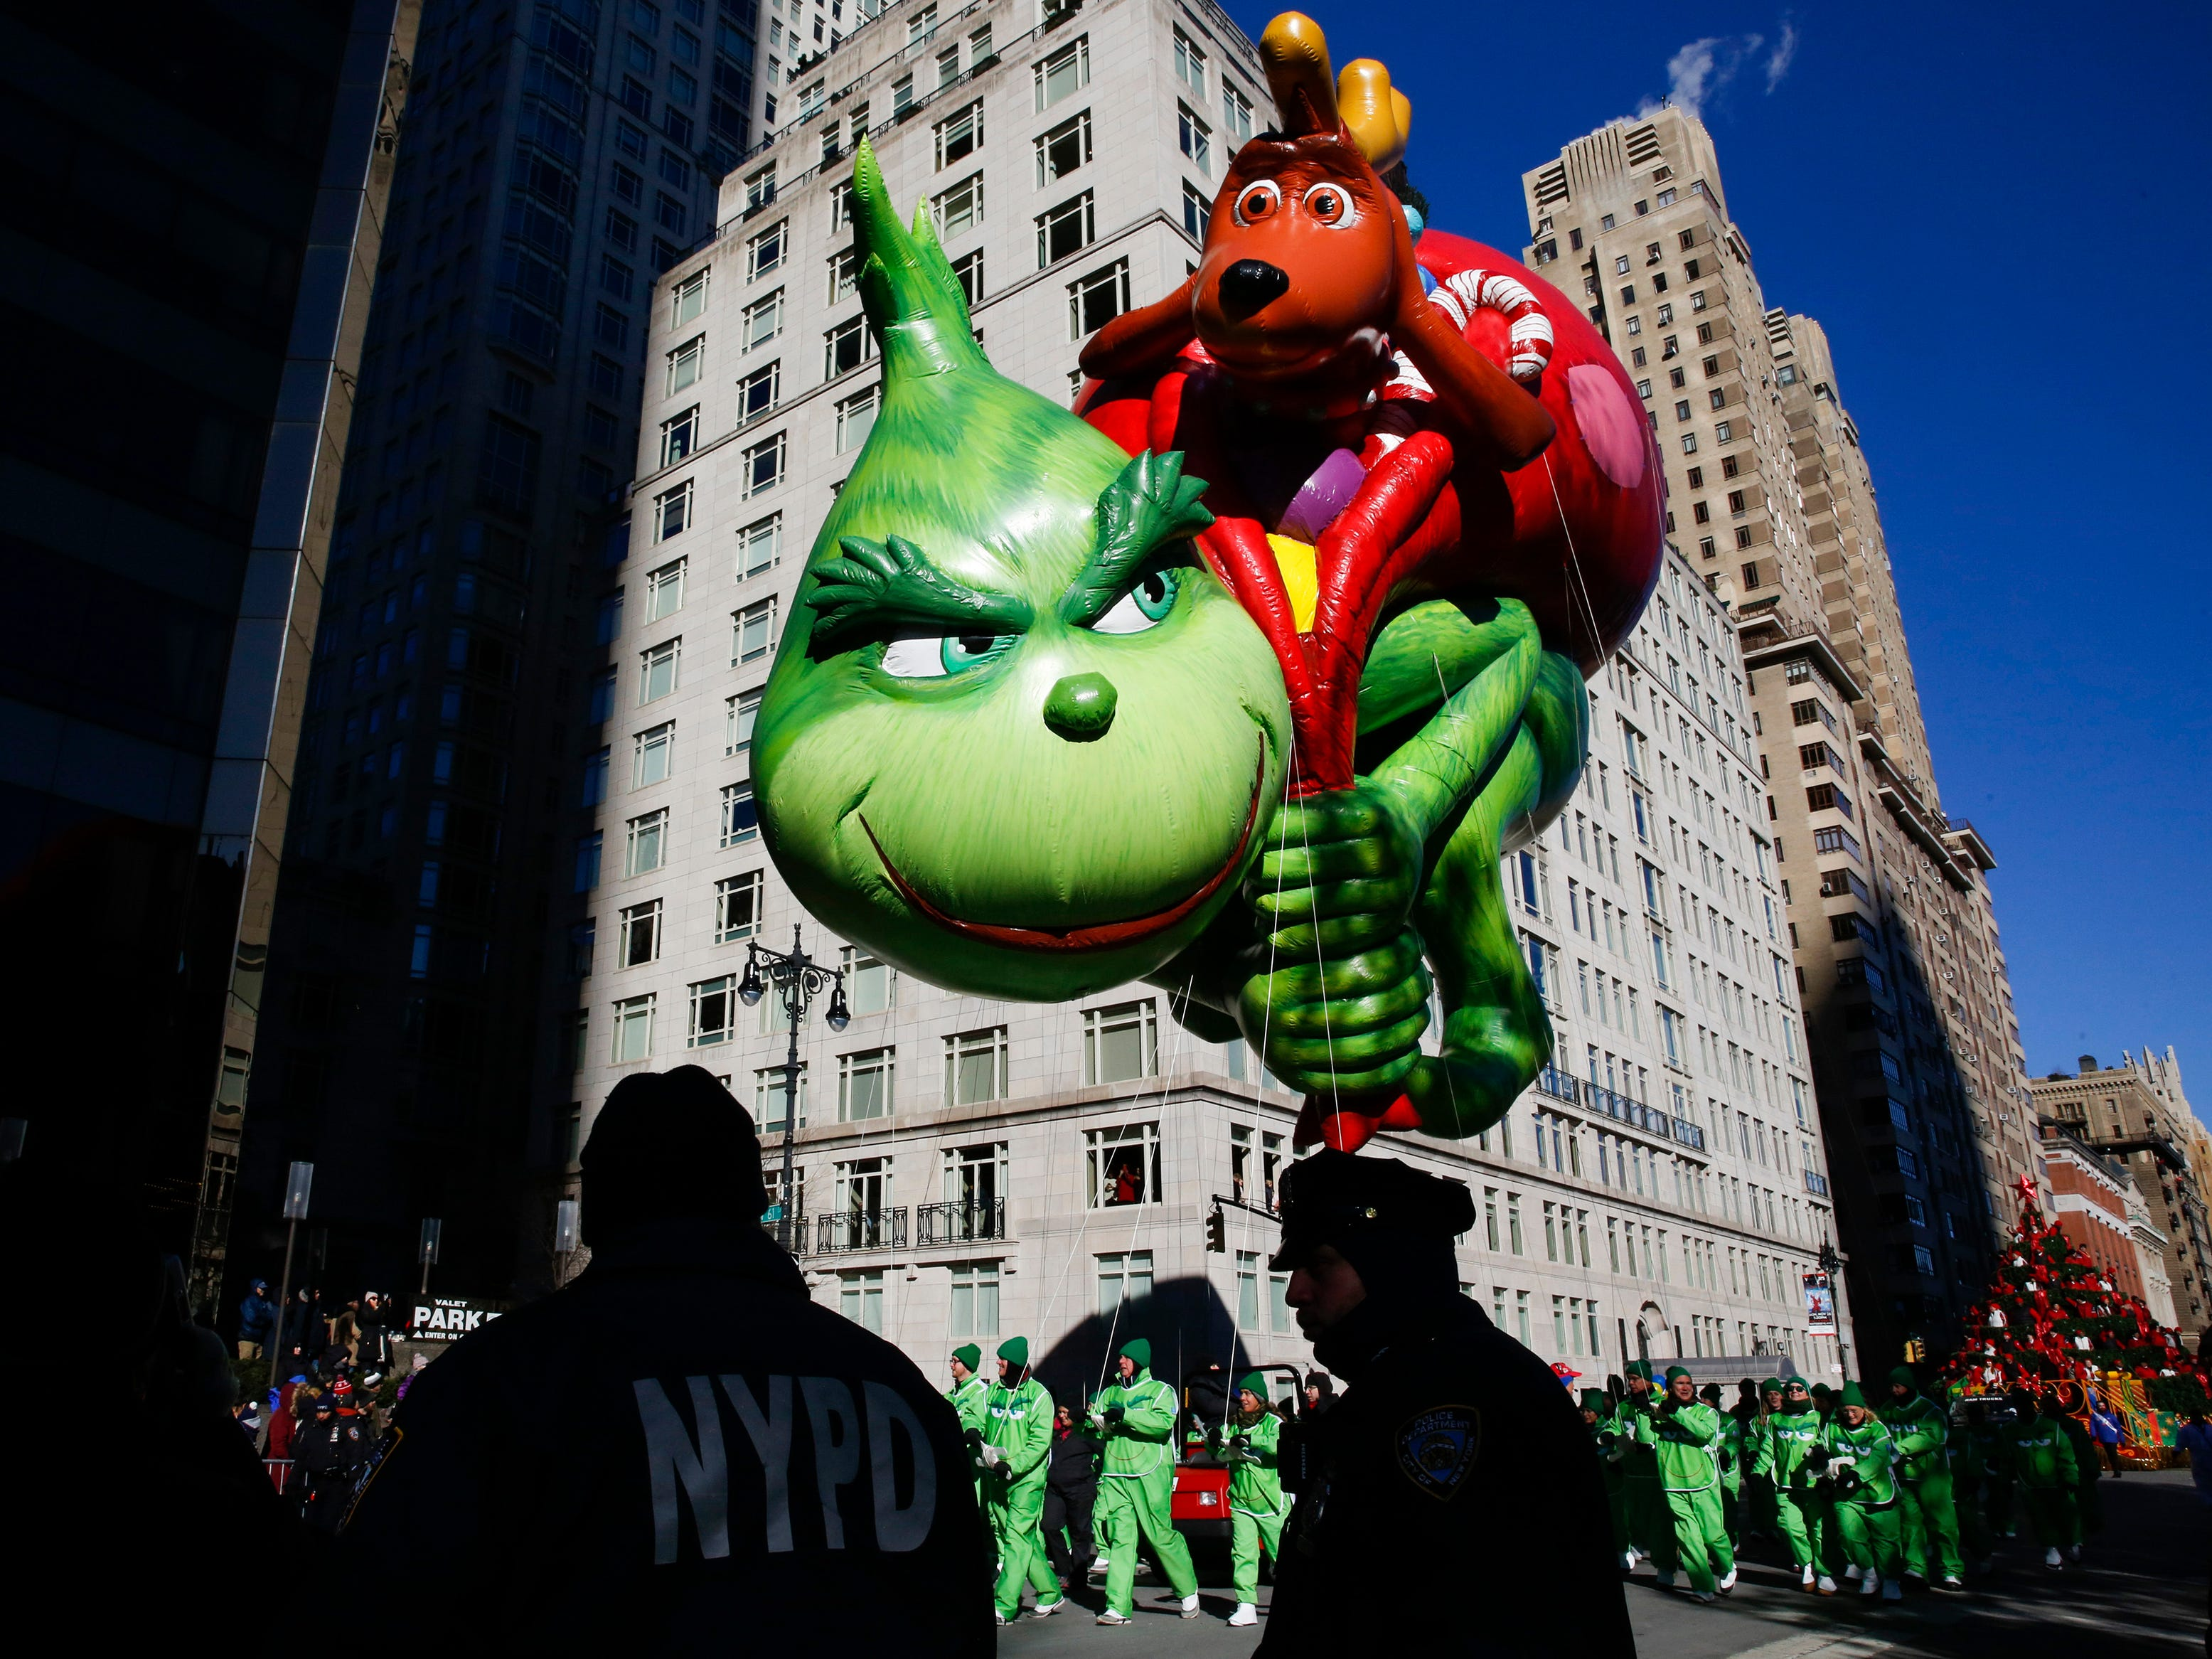 The Grinch balloon floats over Central Park West during the 92nd annual Macy's Thanksgiving Day Parade in New York, Thursday, Nov. 22, 2018.